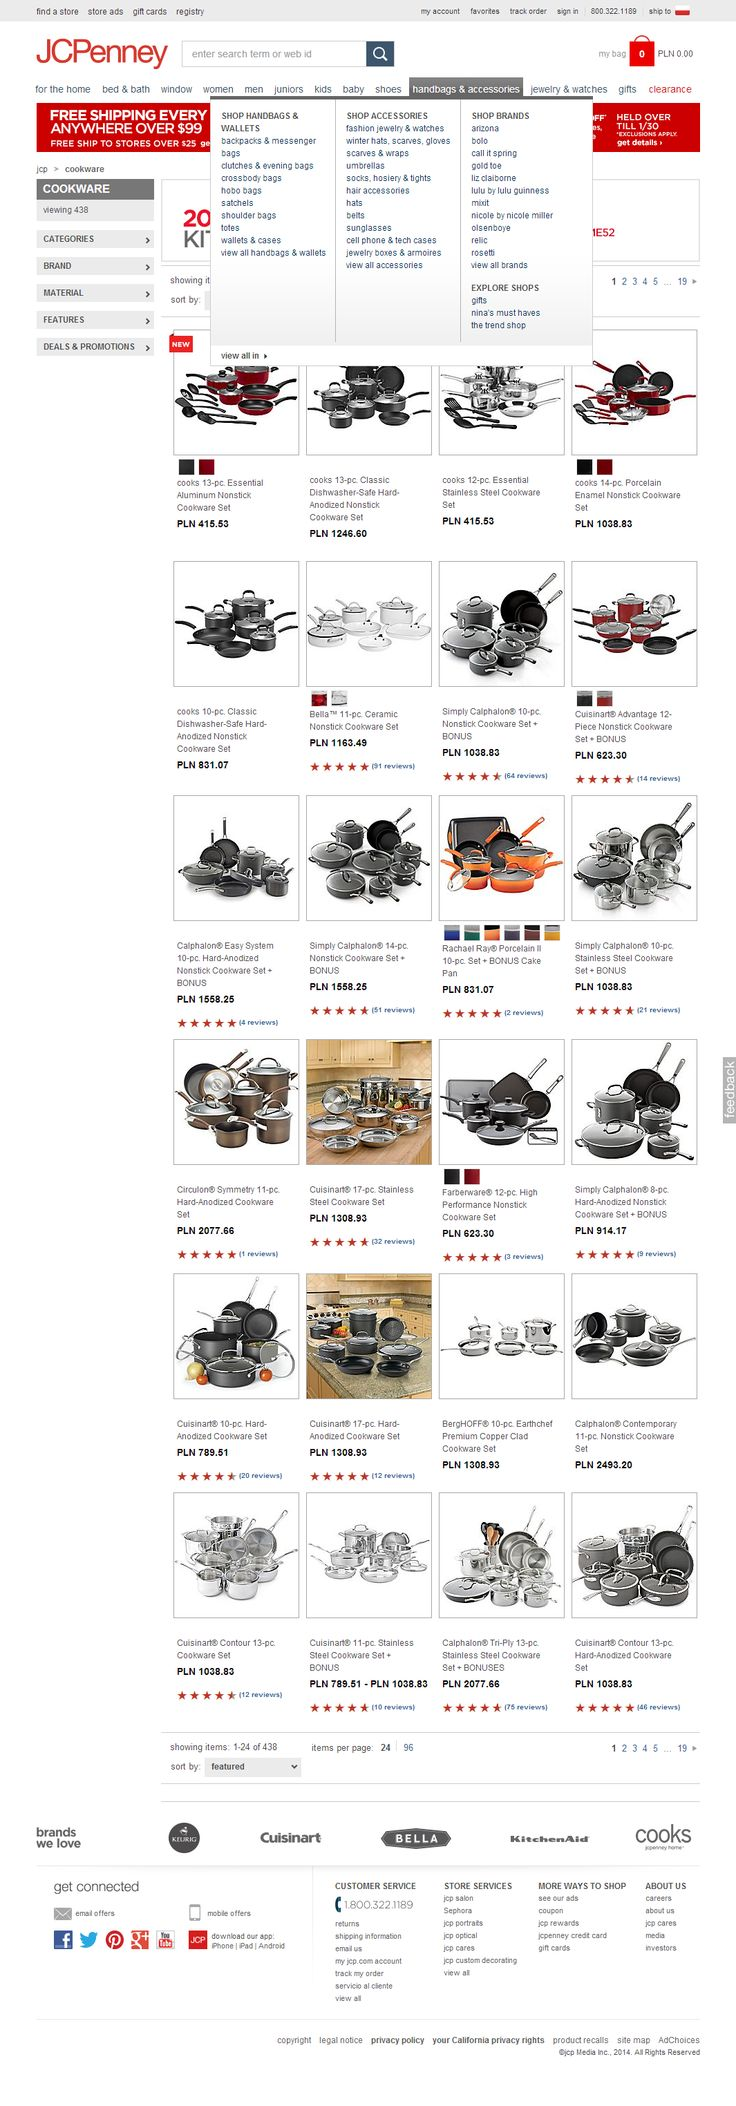 jcpenny.com list